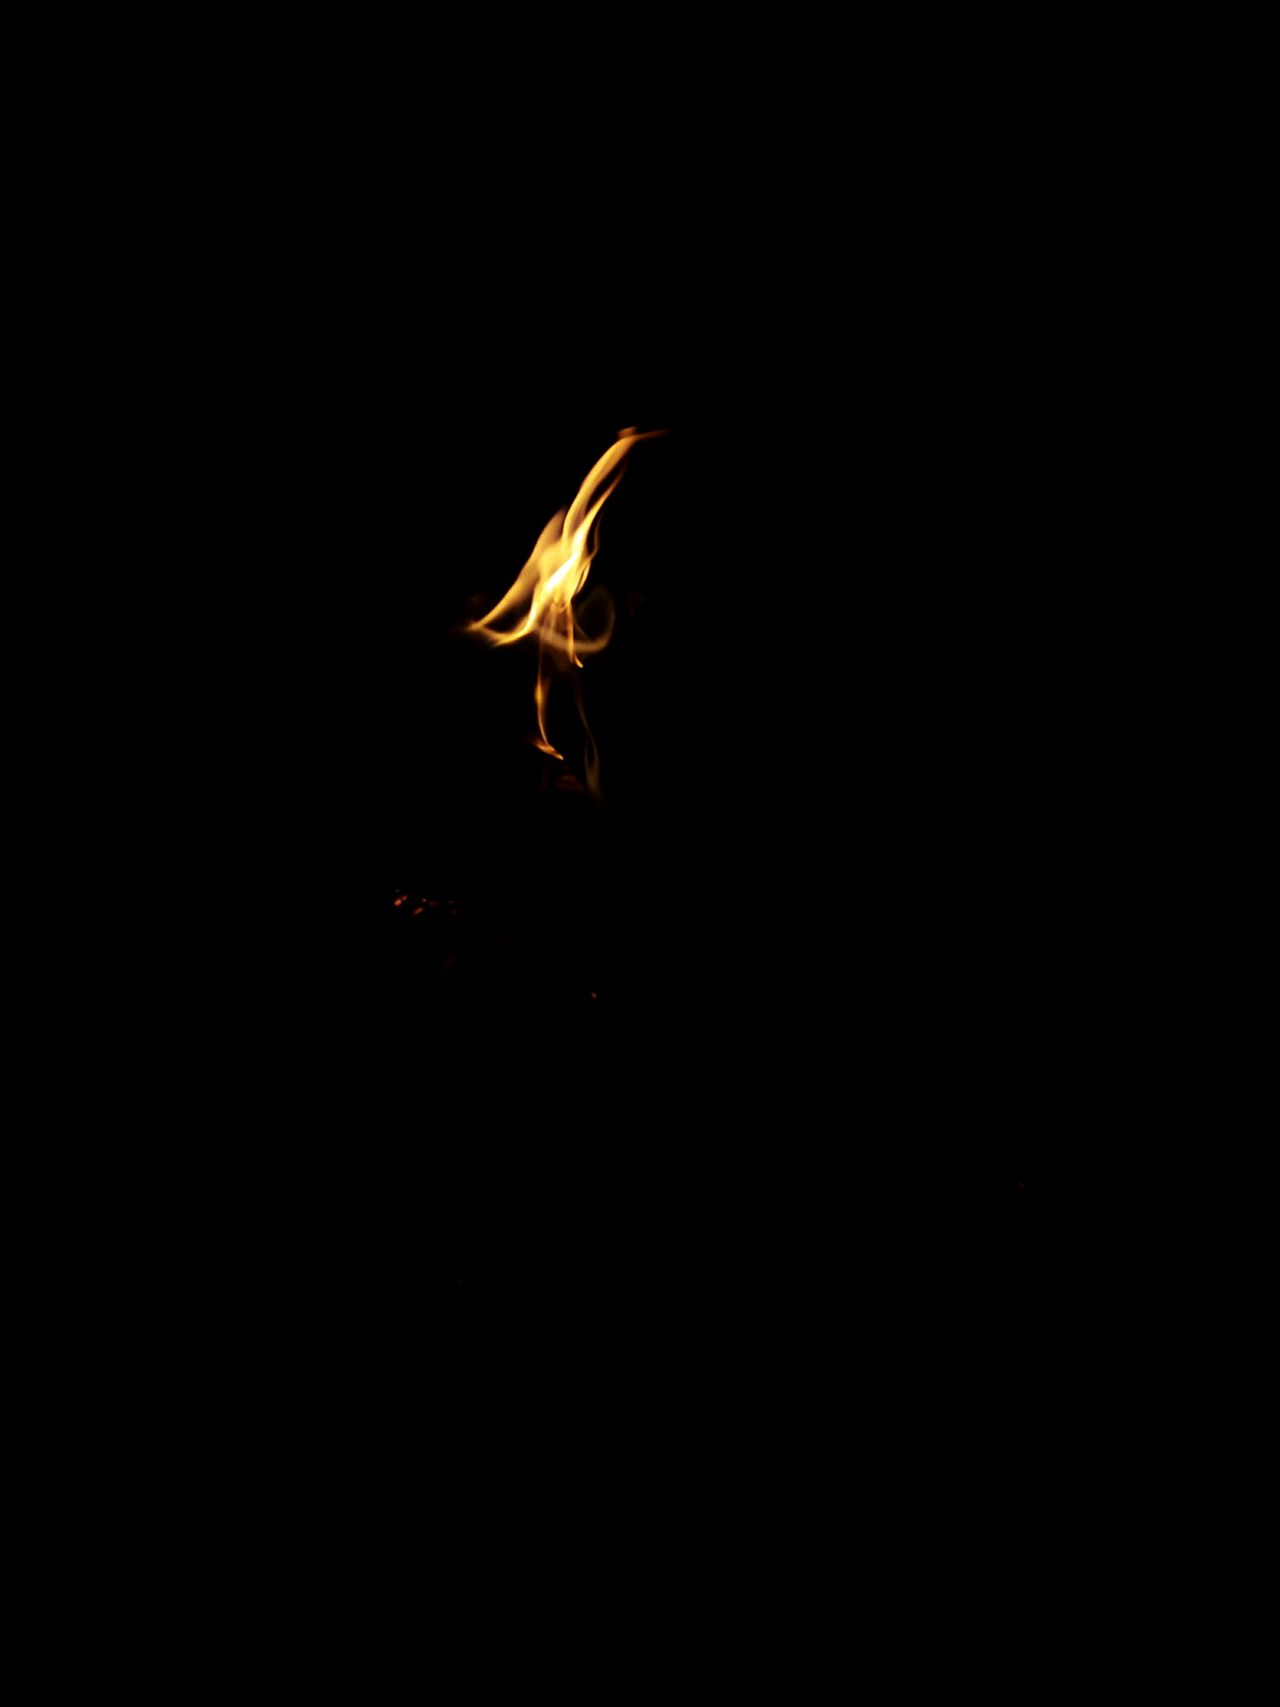 Night No People Black Background Nature Outdoors Fire Wood Fire Beauty In Nature Darkness And Life Dark Close Up Photography Collection Mobile Phone Photography Far Tinyplanet Tinycollective Uniqueness